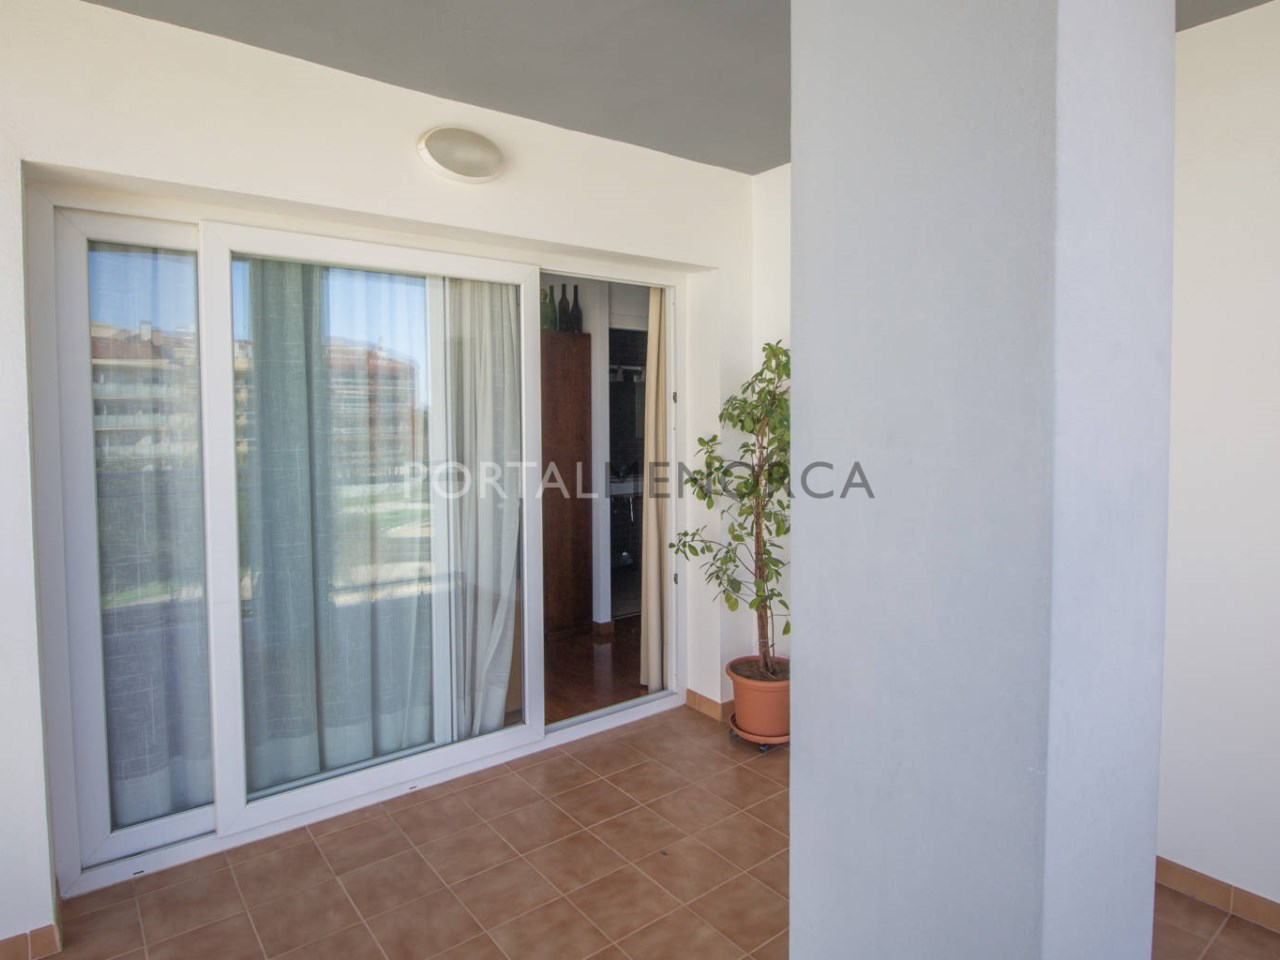 Apartment with 3 bedrooms and terrace for sale in Menorca